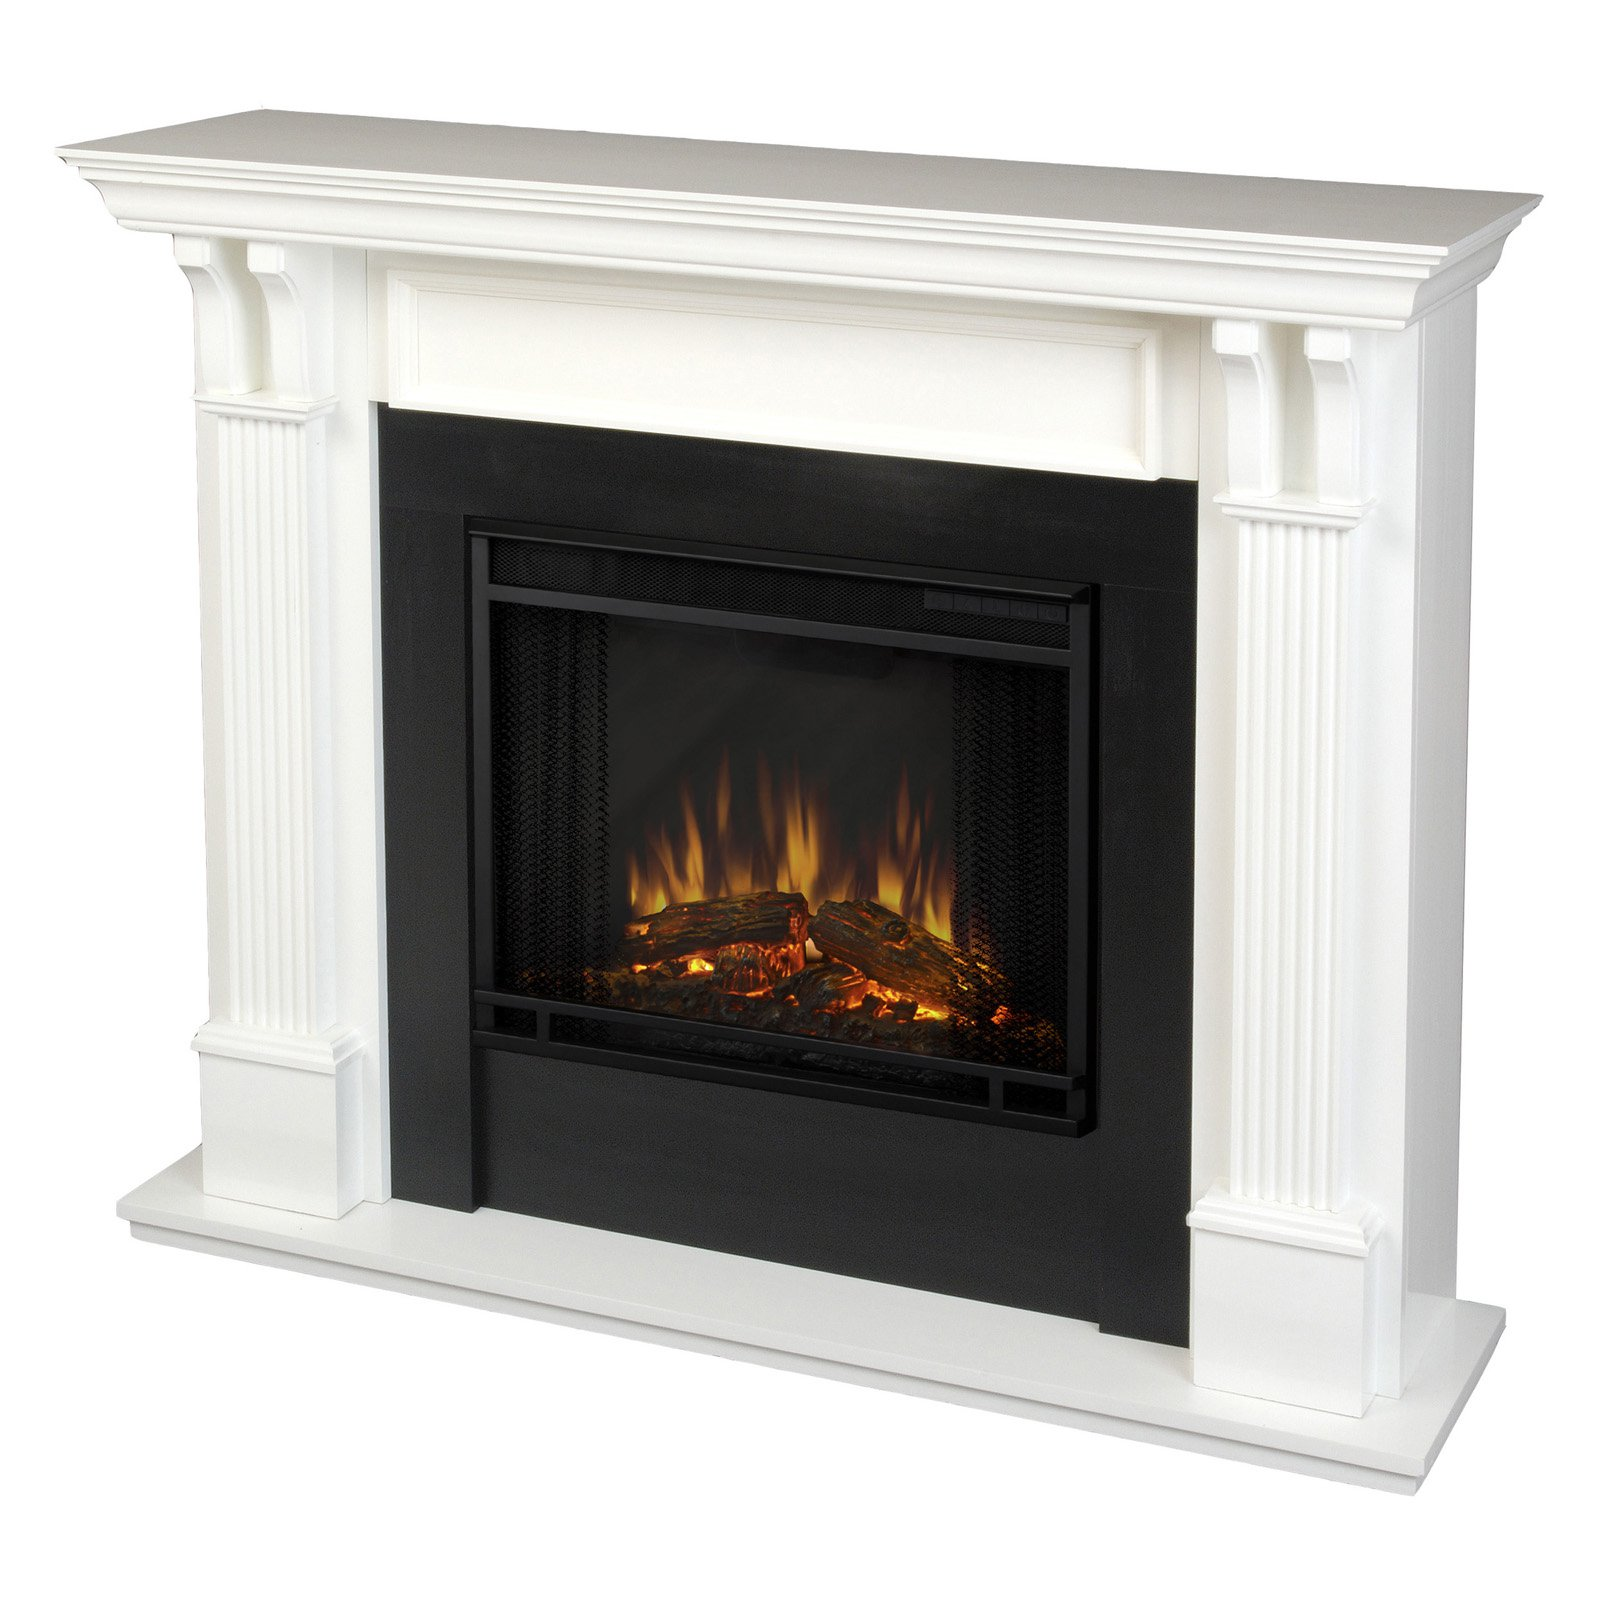 Real Flame Ashley Indoor Electric Fireplace - White - Walmart.com